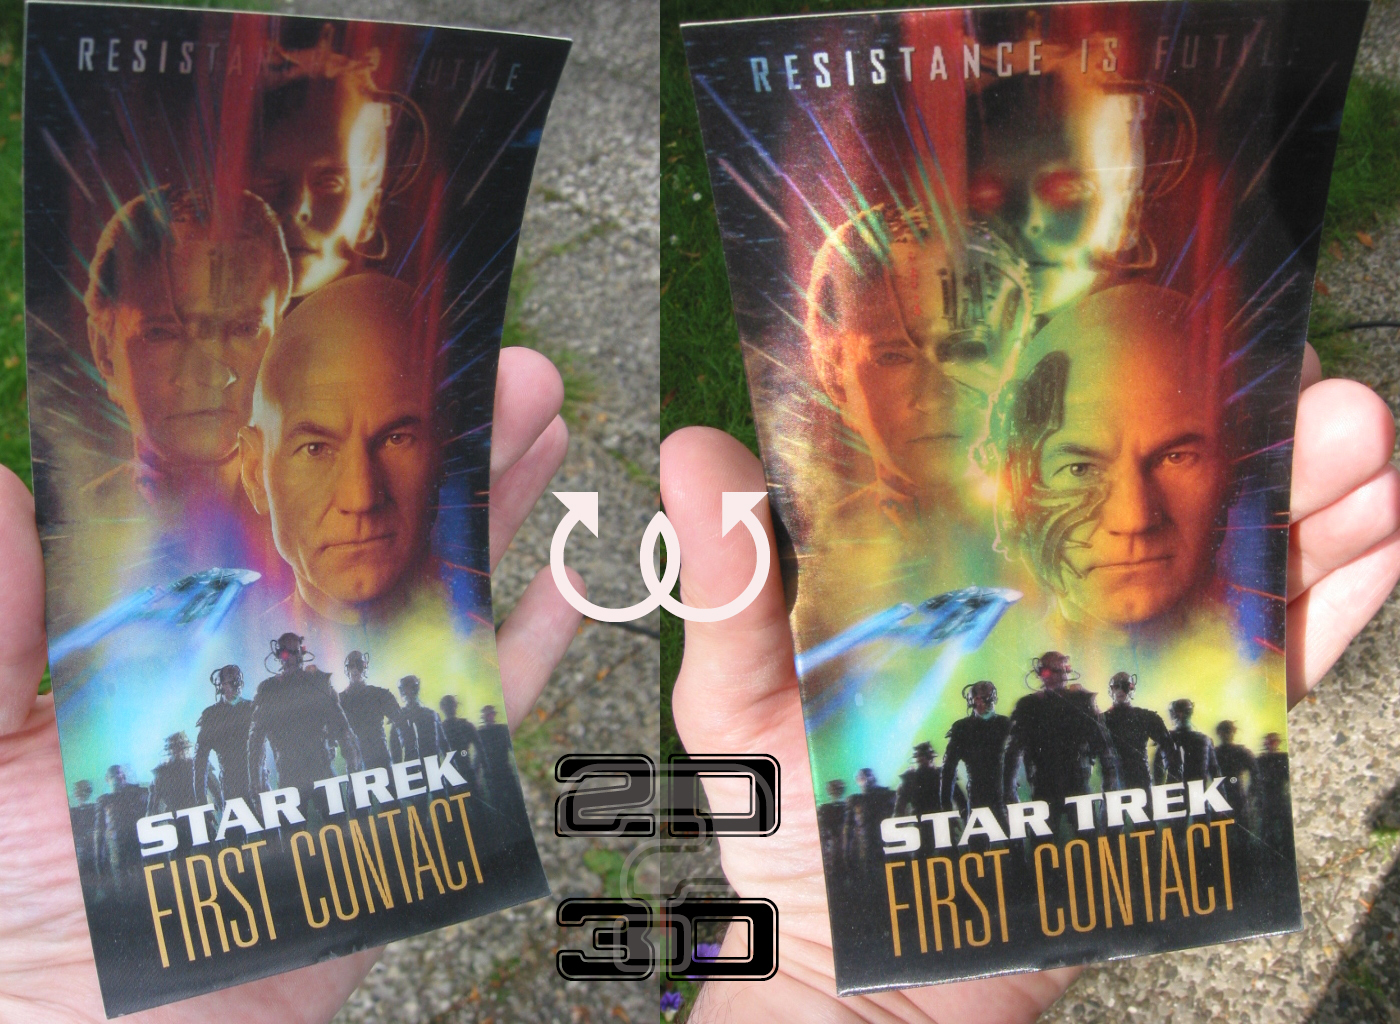 VIII First Contact 1996 2D-holographic interlayer foil card simulating 3D effect